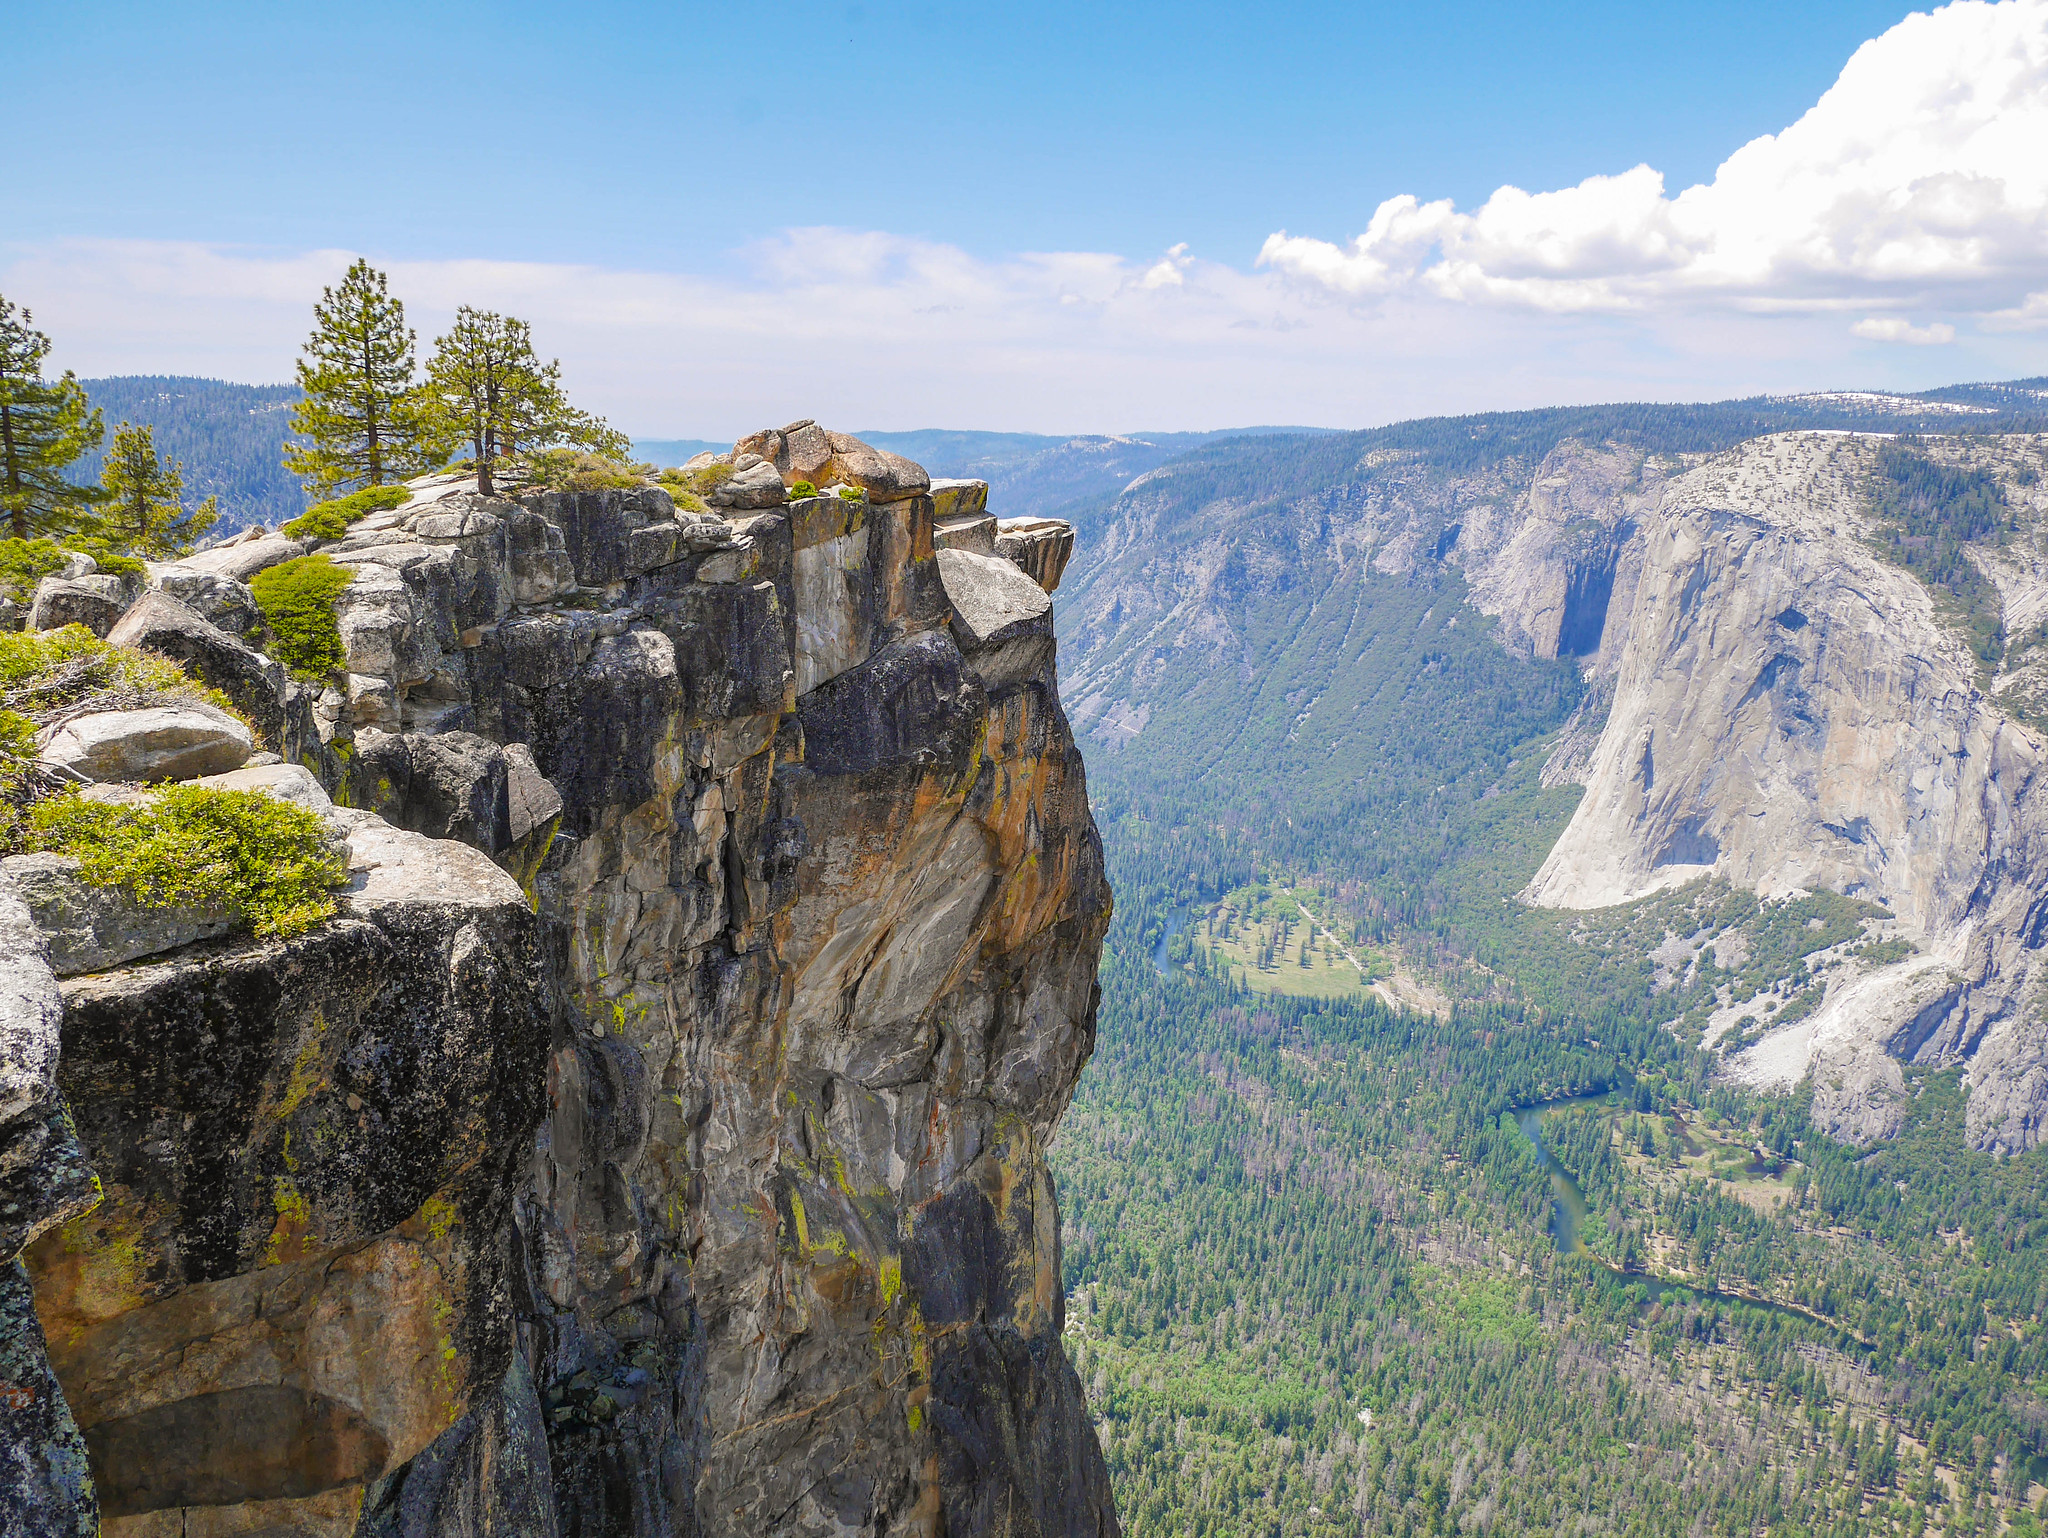 Taft Point all to myself! Amazing.